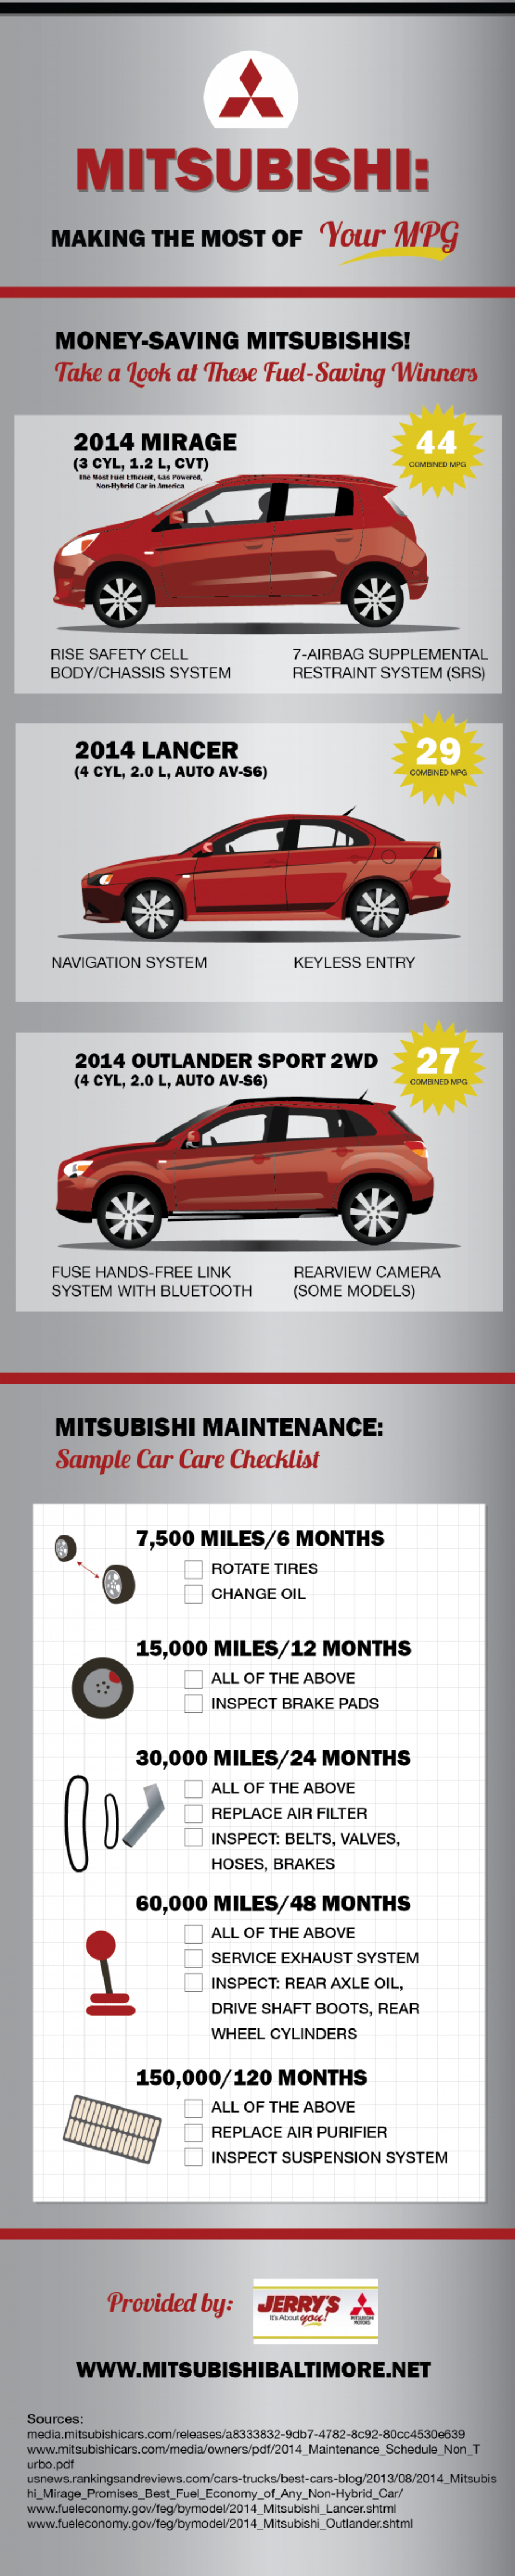 Mitsubishi: Making the Most of Your MPG Infographic